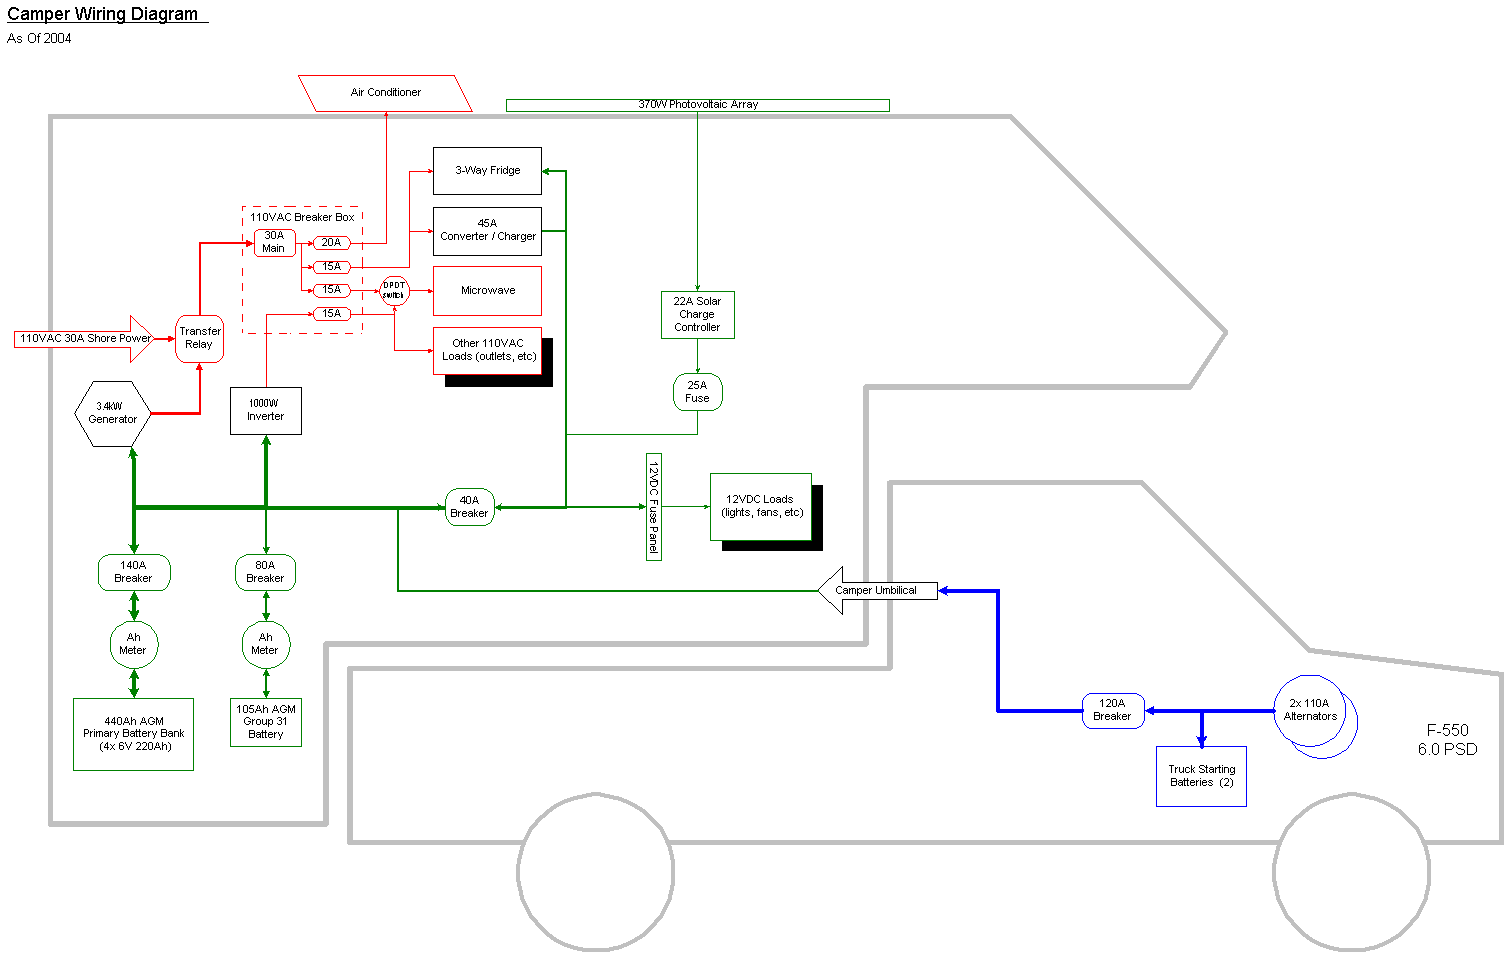 2004Diagram camper wiring diagram camper wiring diagram vw 1969 \u2022 wiring RV 30 Amp Breaker at gsmportal.co